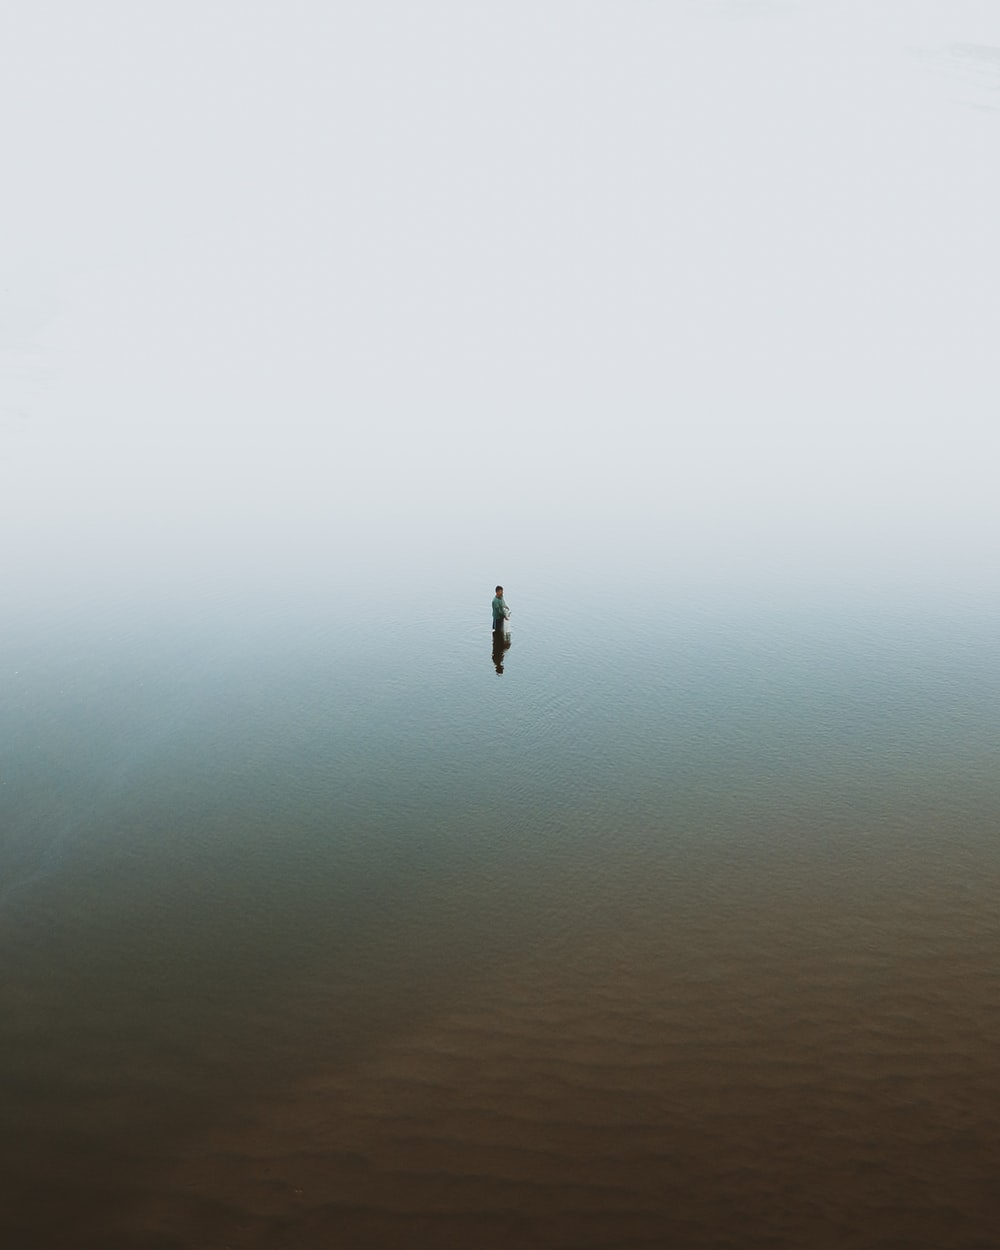 person in body of water during daytime